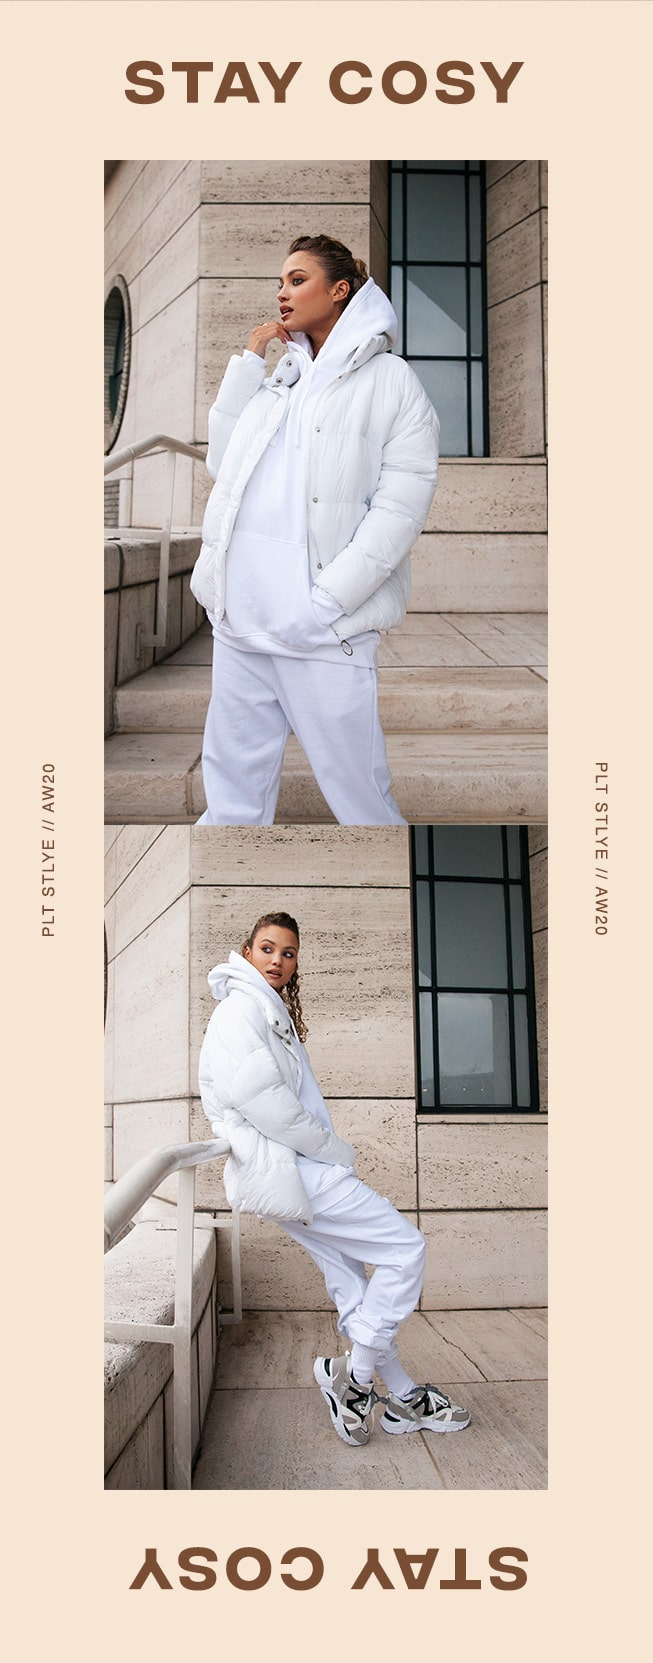 Rose Bertram Lookbook Image 5 Mobile